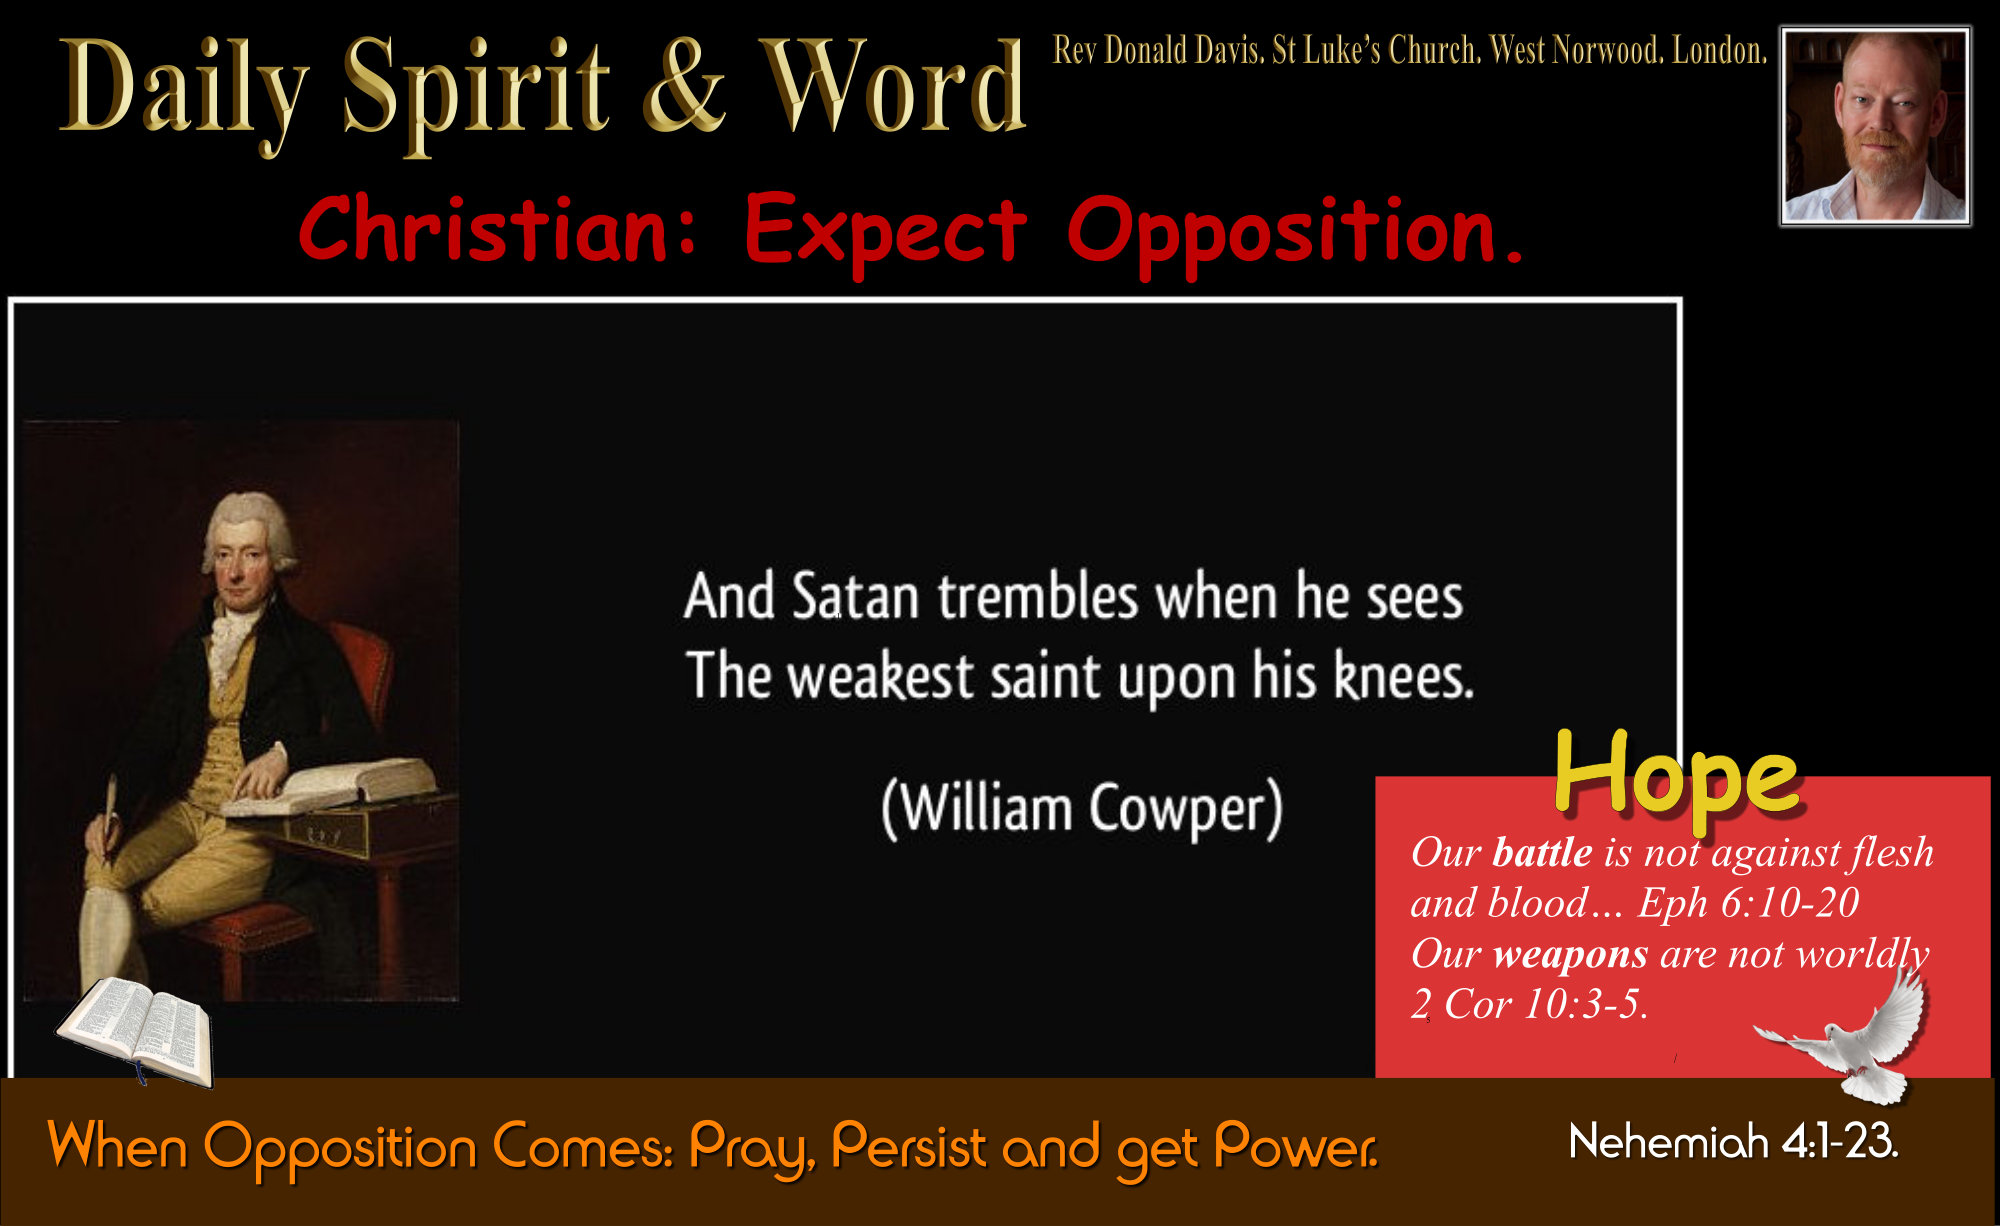 when you work for Jesus, expect opposition from the enemy